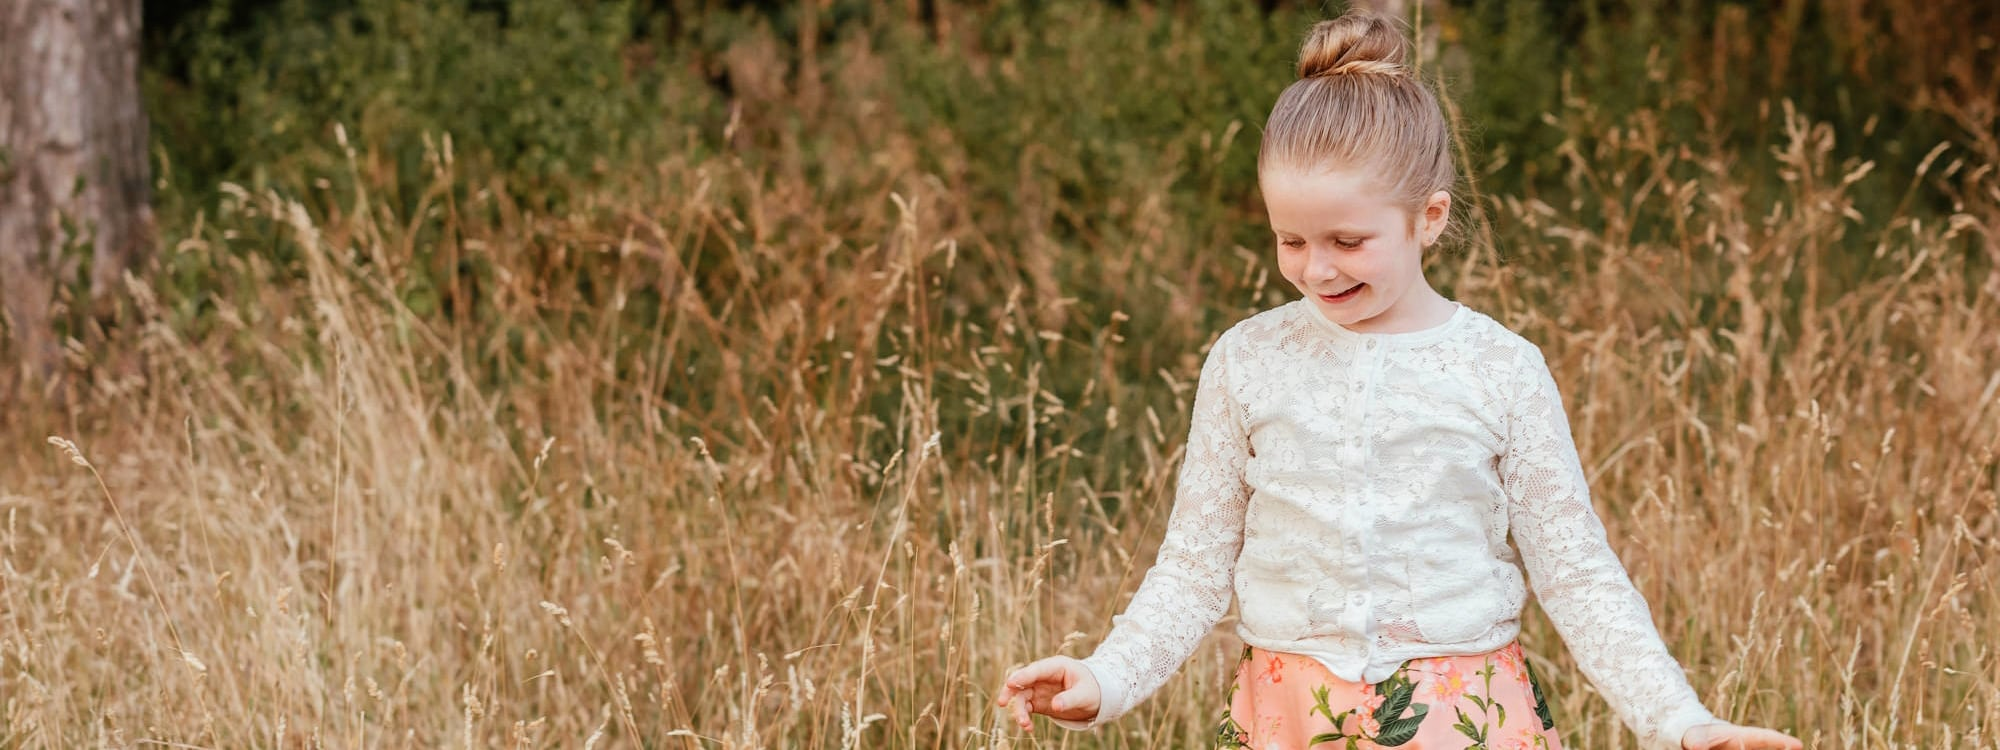 Girl plays in tall grass looking down and smiling, really cute family photo